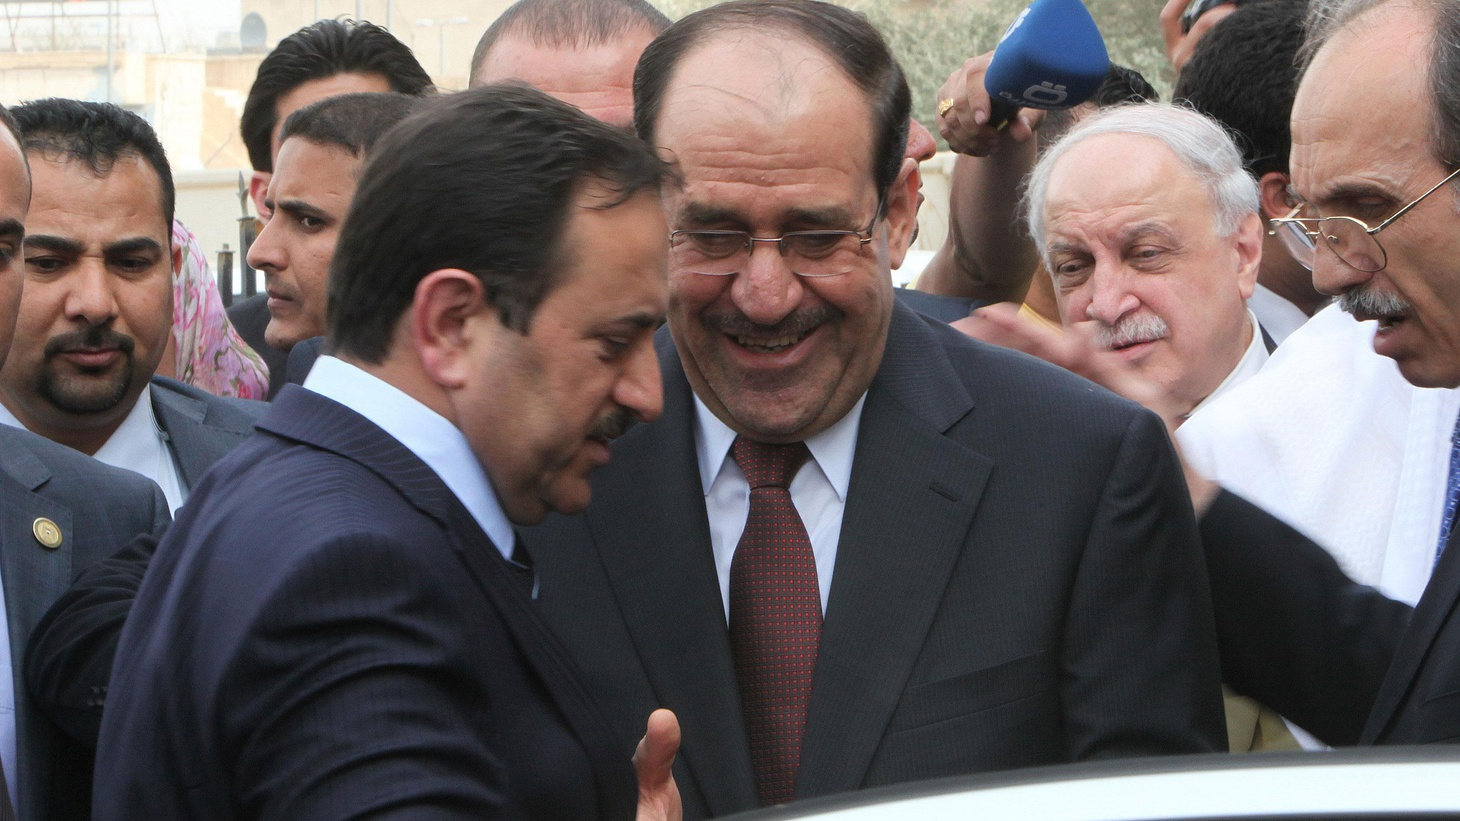 Iraq may still be at risk of coming apart, but it's hosting the Arab League for the first time since the era of Saddam Hussein. Can it prevent more bloodshed in Syria?